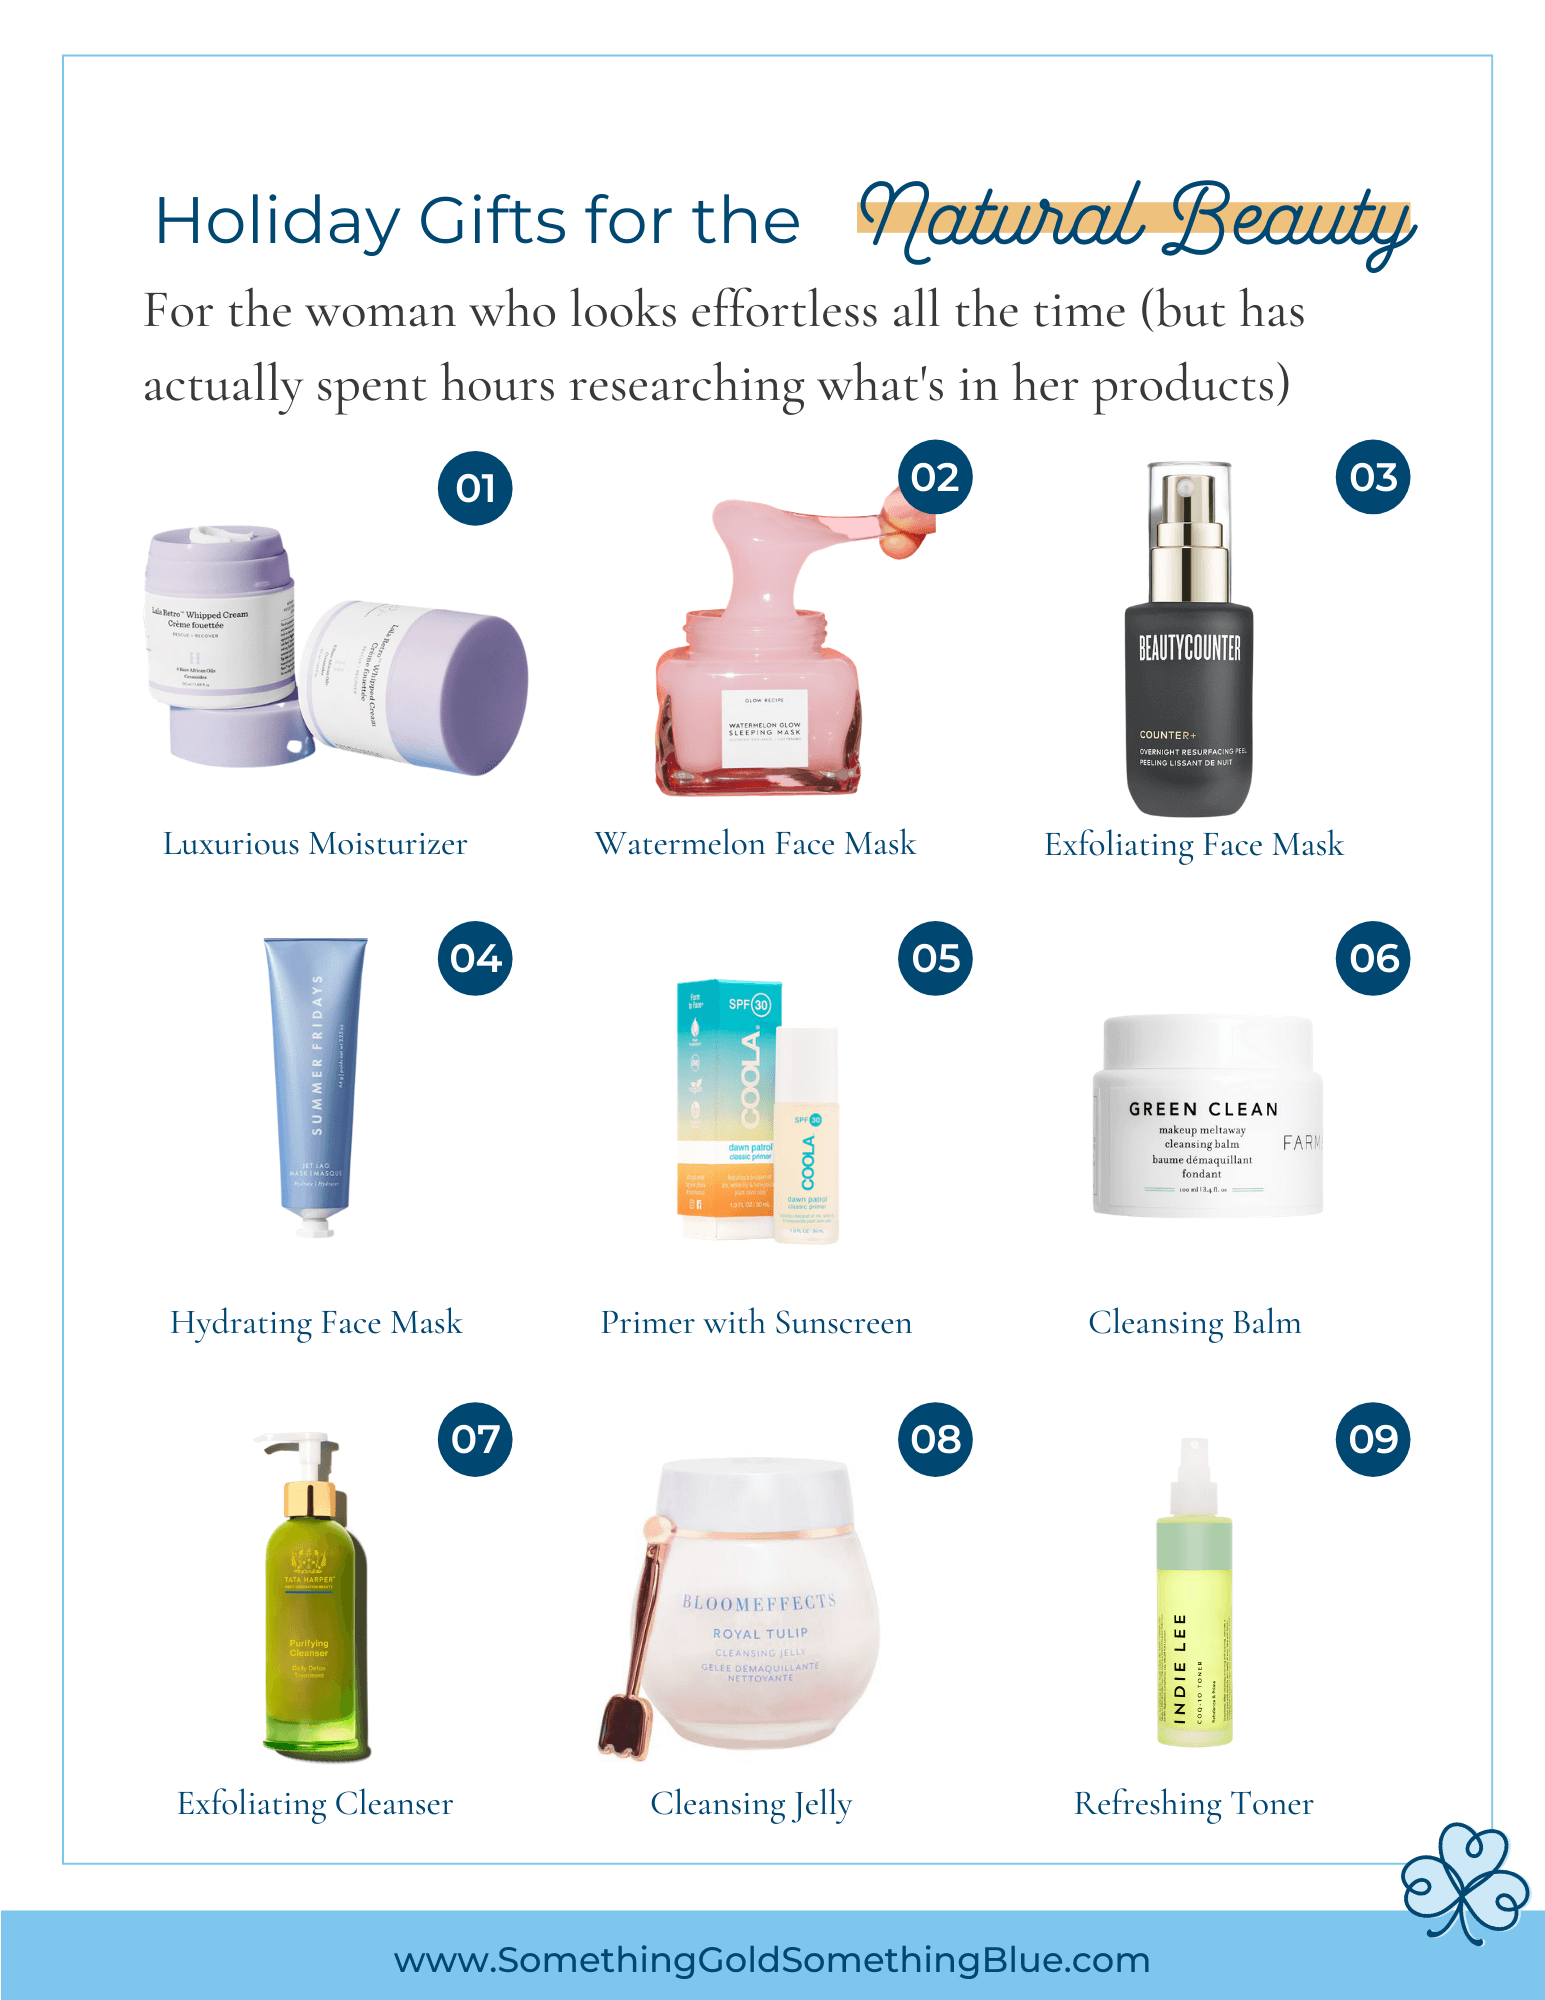 Holiday gift guide for the natural beauty and clean beauty enthusiast. These products do not contain harmful ingredients, but still pack a punch